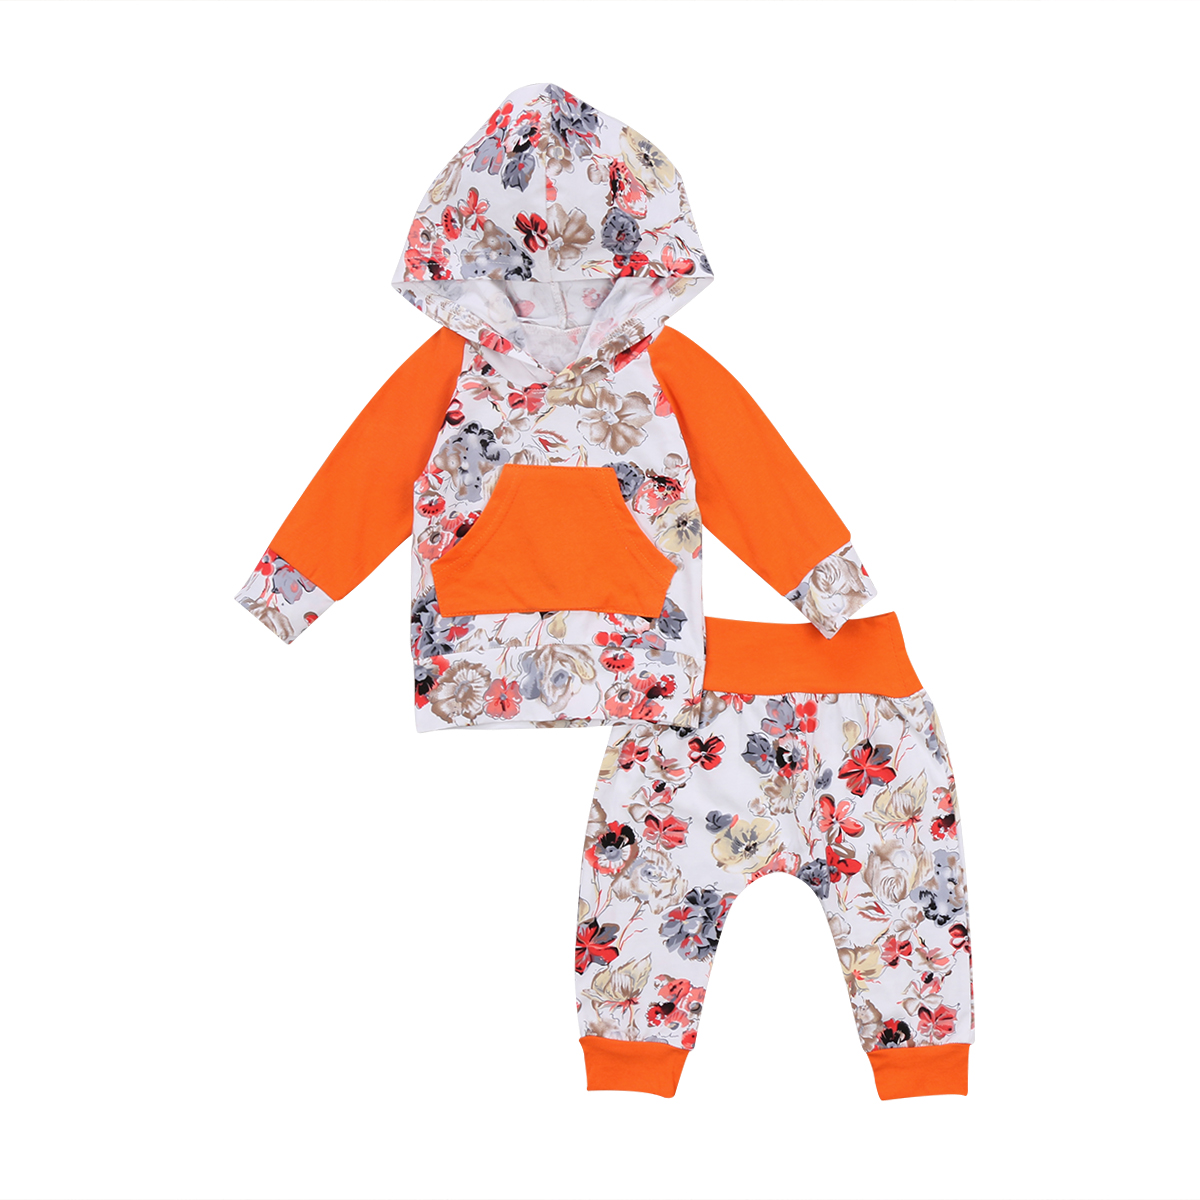 cute Infant Toddler Newborn Baby Girls clothes Hoodie sweatshirt Tops Floral Pants 2Pcs Outfits Set autumn baby girl Clothing